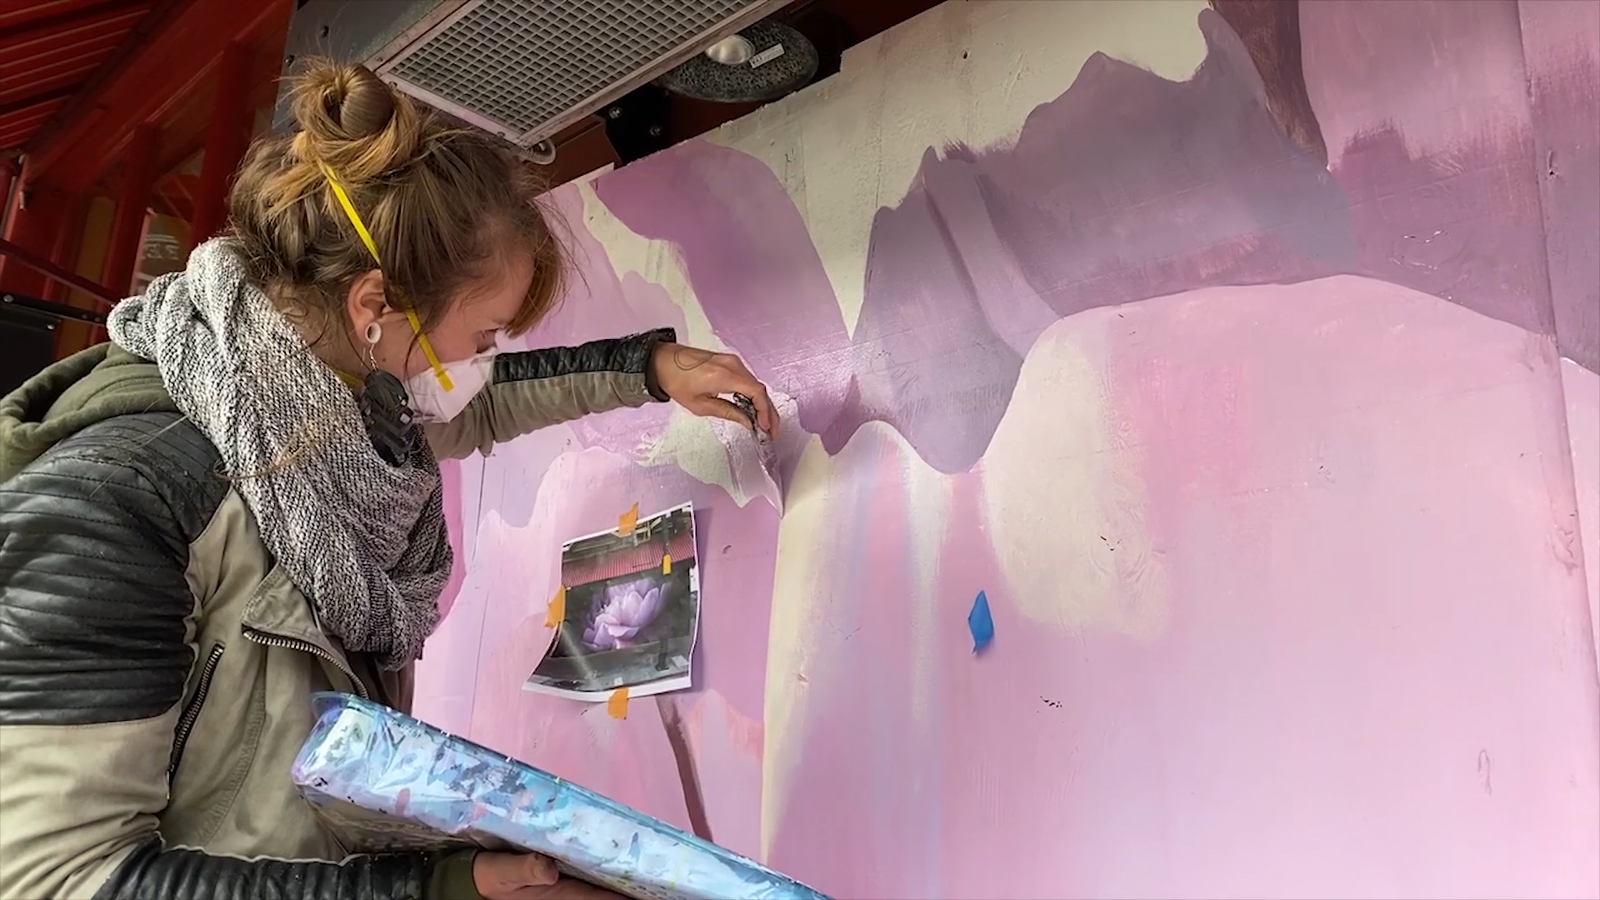 Bay Area artists uplift community through painted murals in project 'Paint the Void'